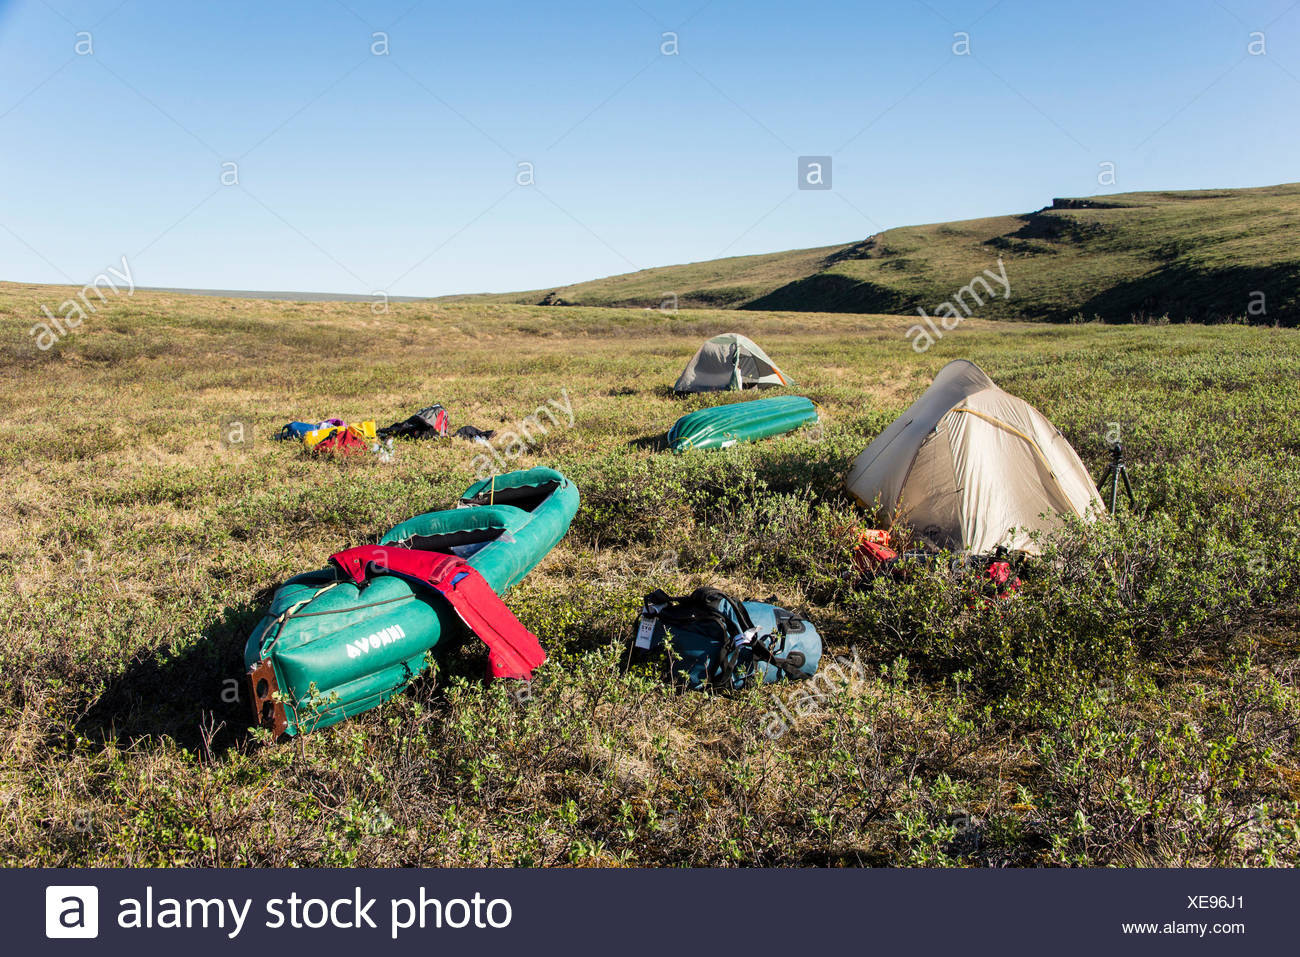 Campingplatz, camping, Expedition, national Petroleum Reserve, Petroleum Reserve, Alaska, USA, Amerika, reservieren, Alaska, USA, amerik. Stockbild